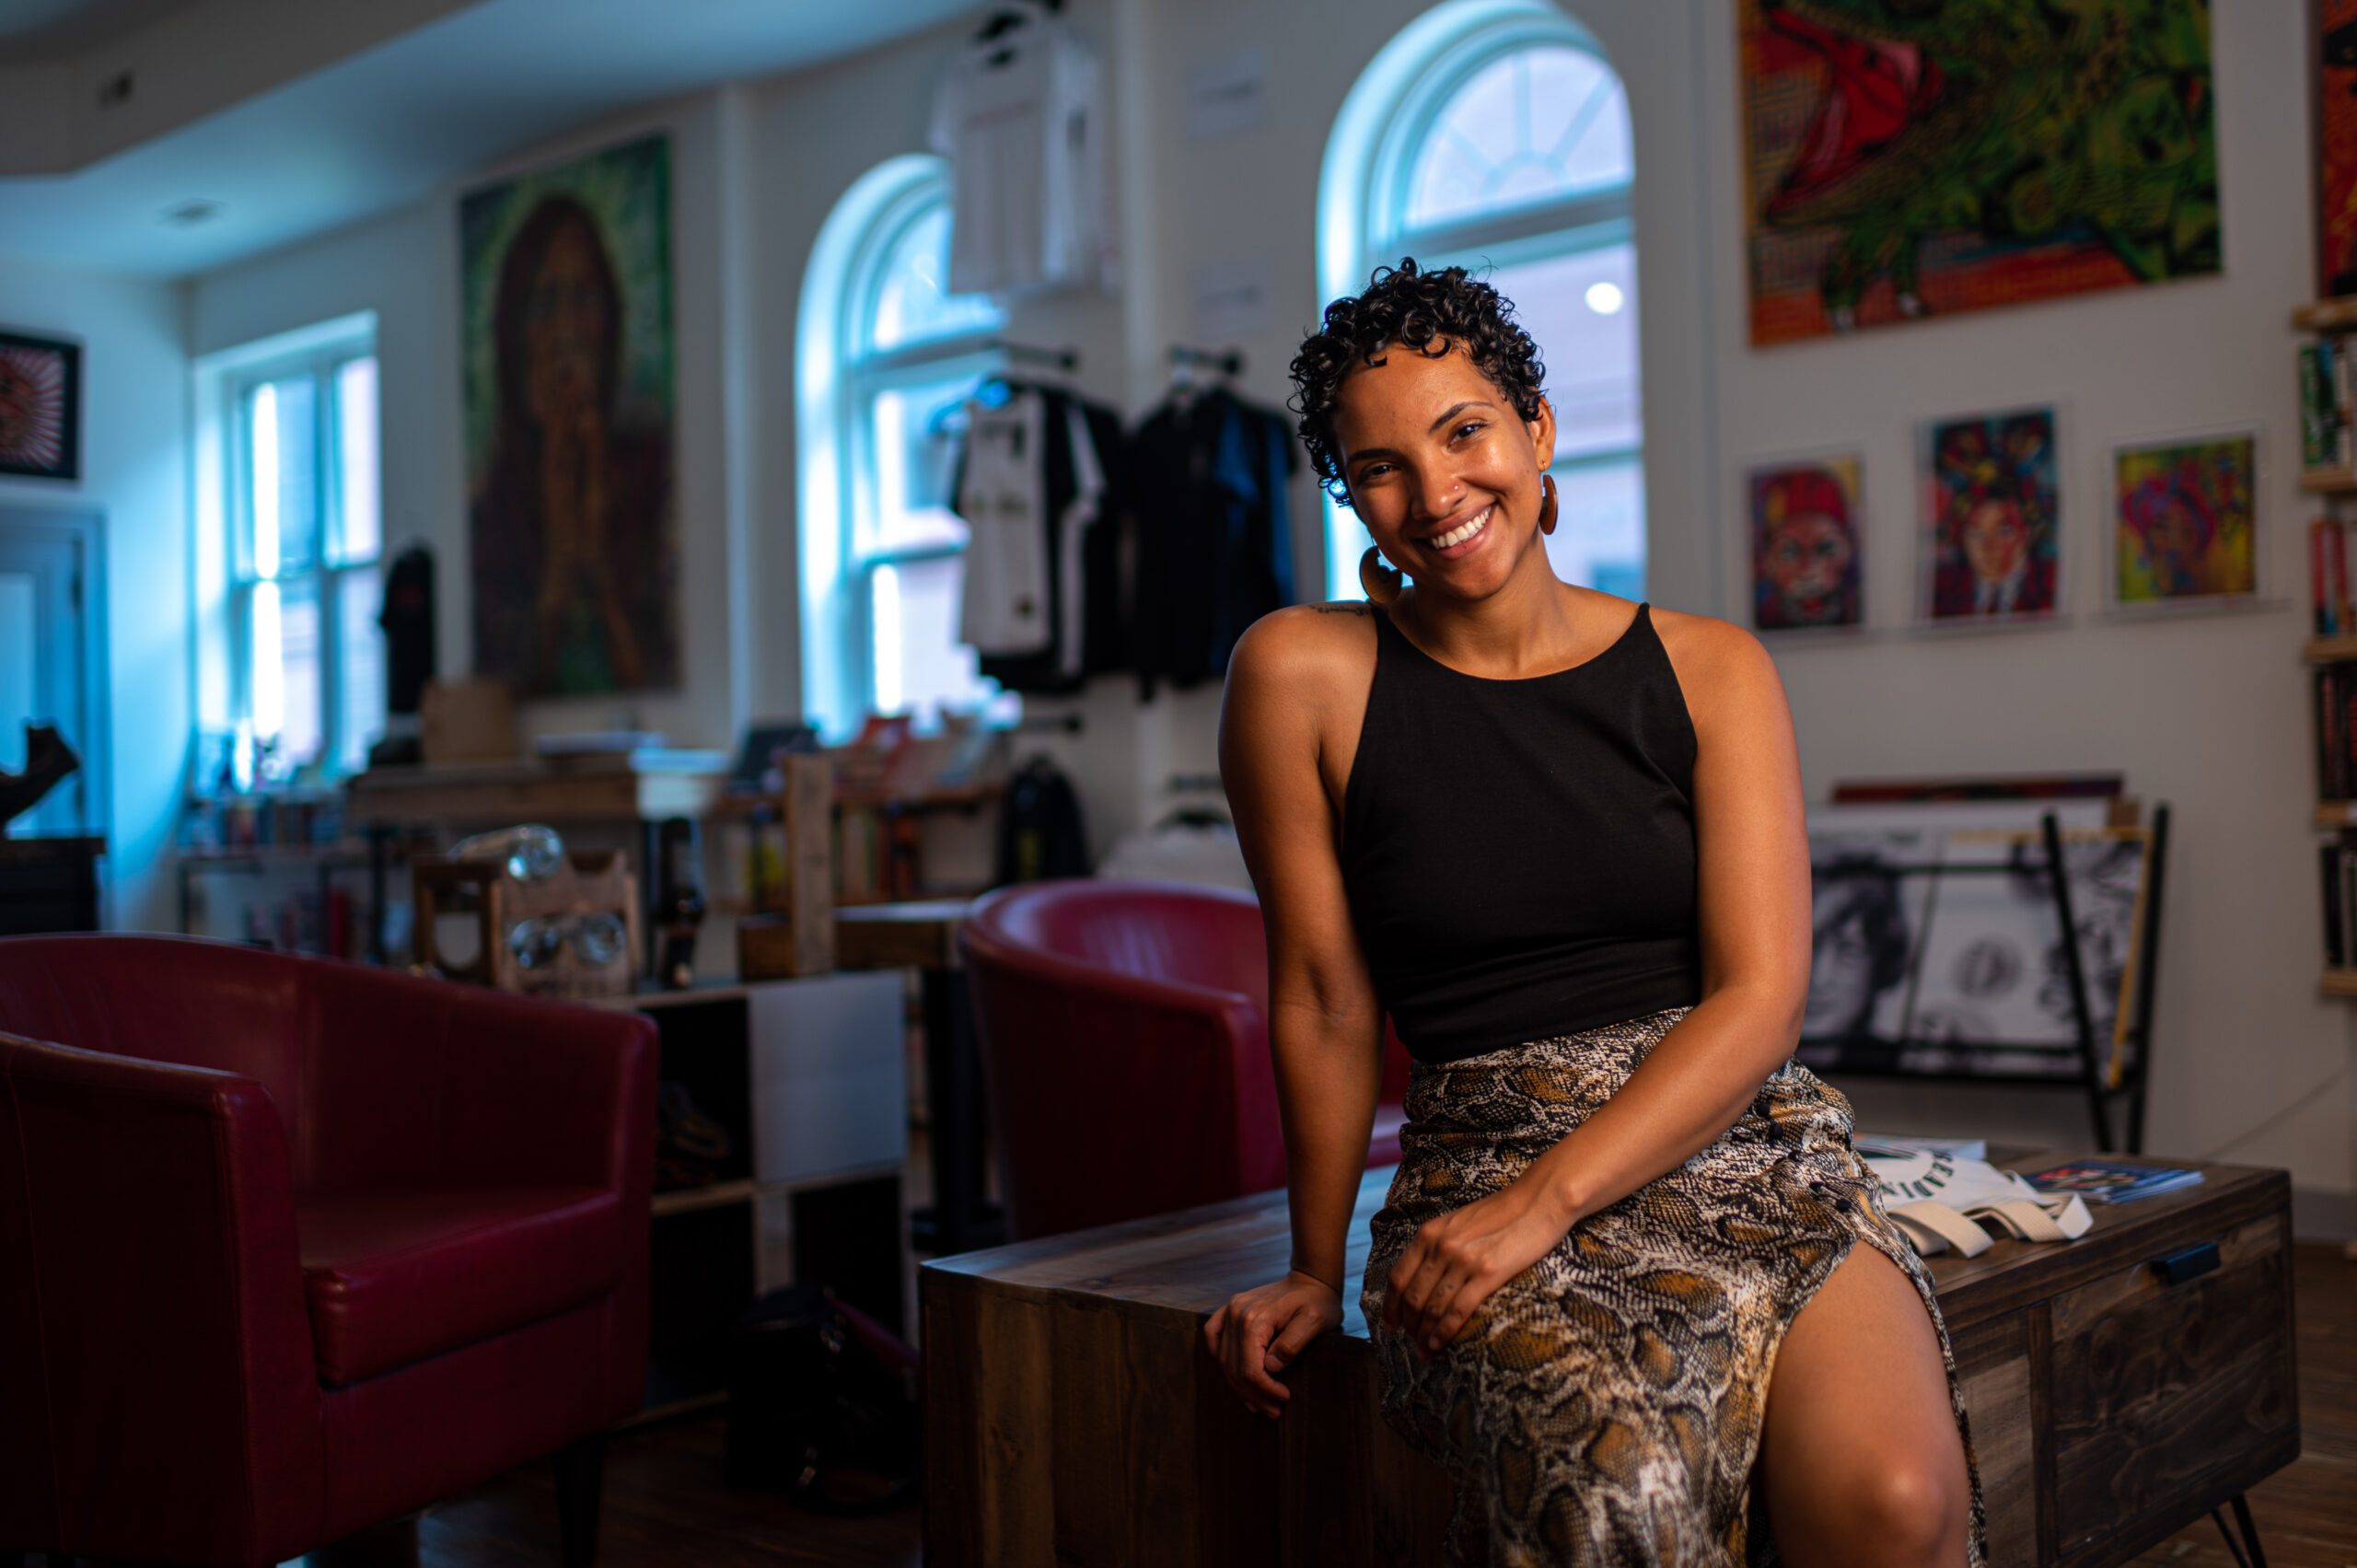 news.umich.edu: Black-owned bookstore blends culture and community in Flint